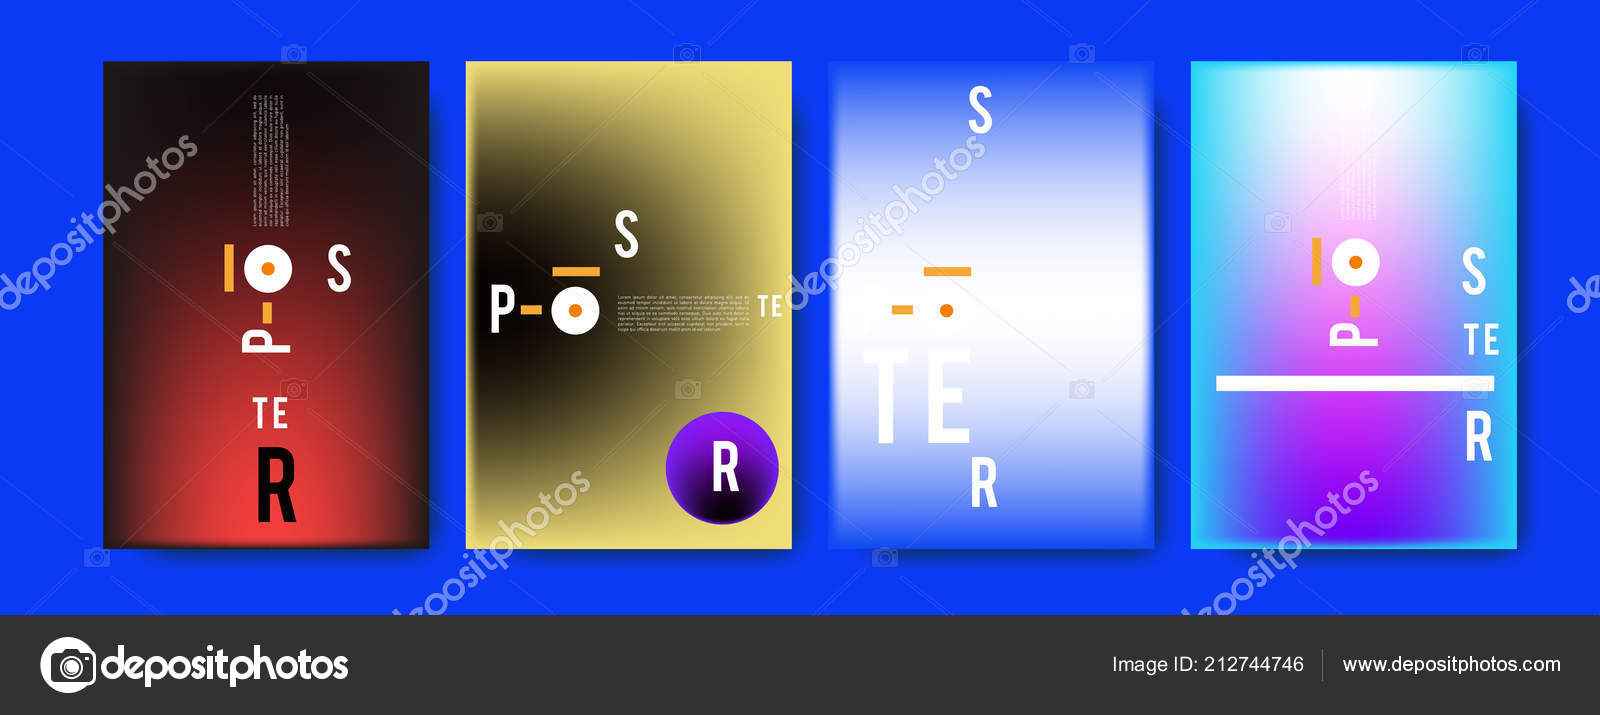 Abstract Colorful Collage Poster Design Template Cool Geometric